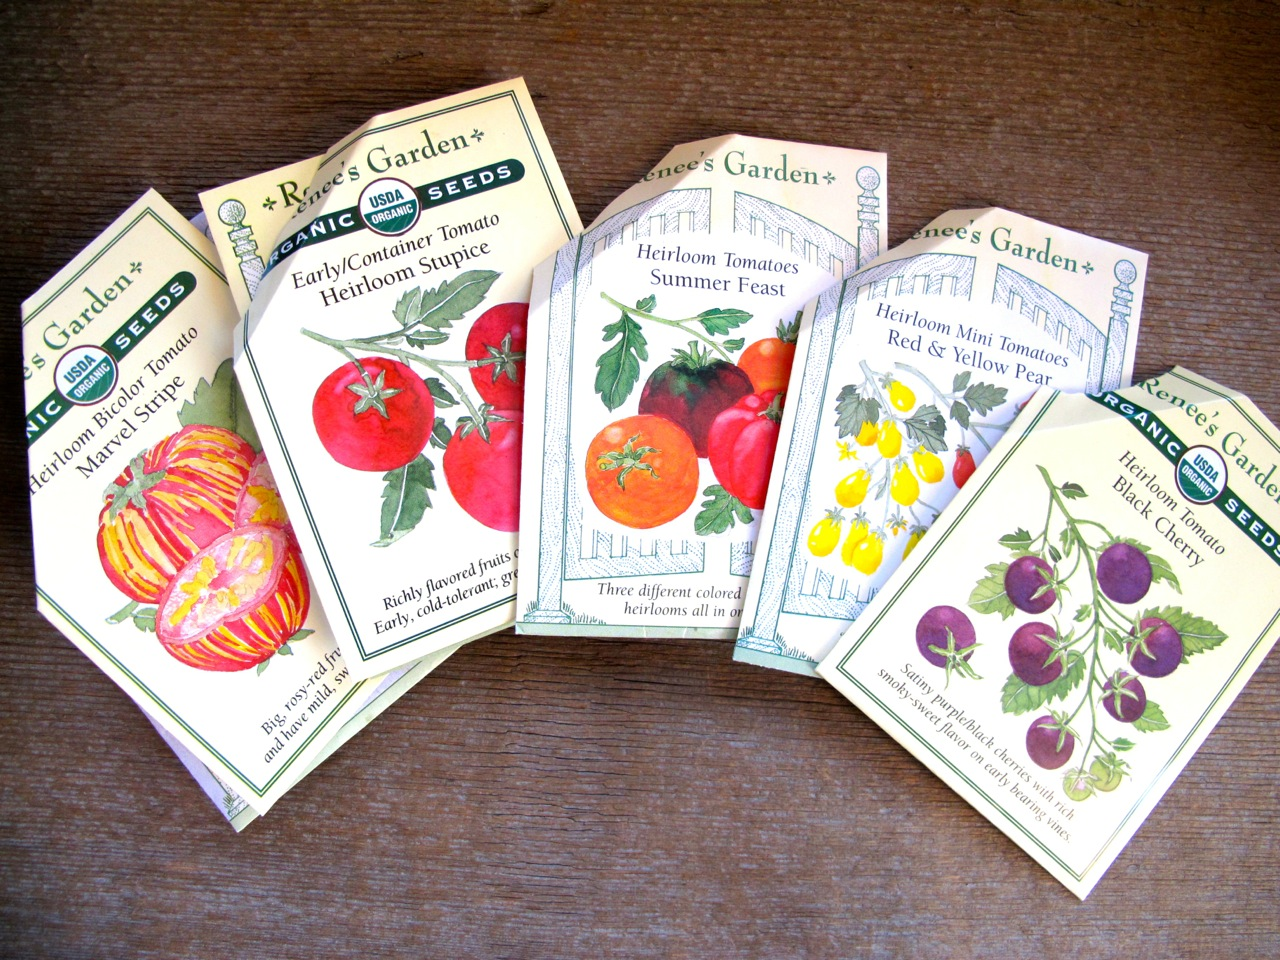 Tomato seed packets from Renee's Garden Seeds